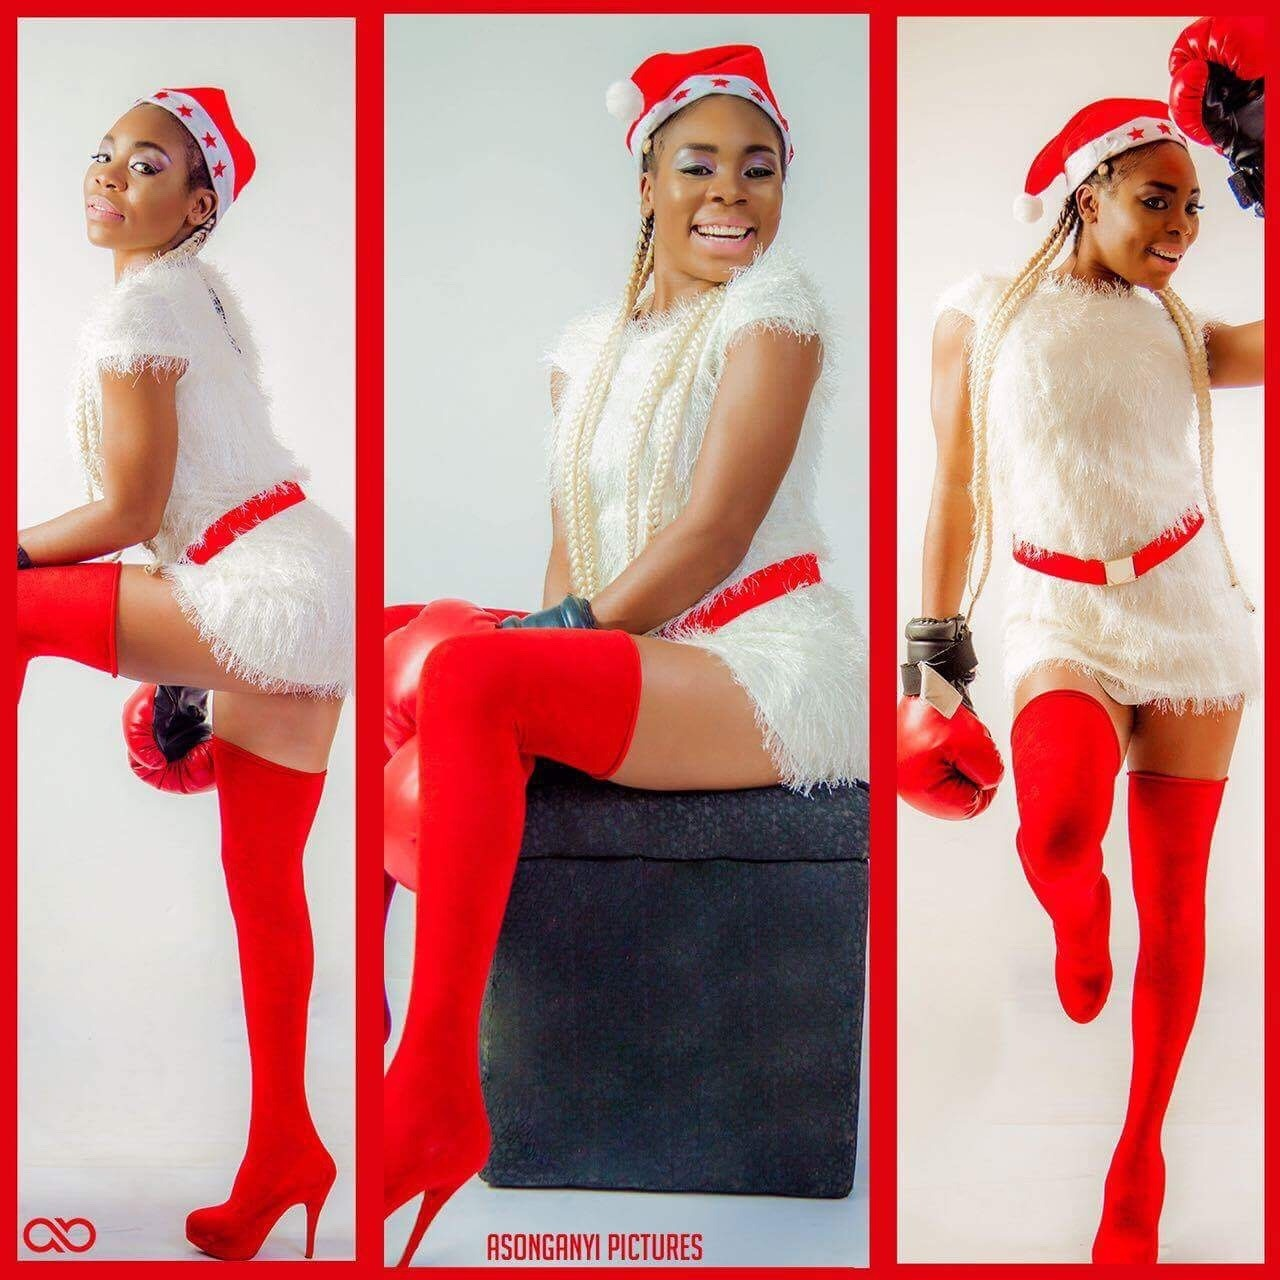 ASKIA POSES IN SEXY RED OUTFIT AS ELF FOR CHRISTMAS